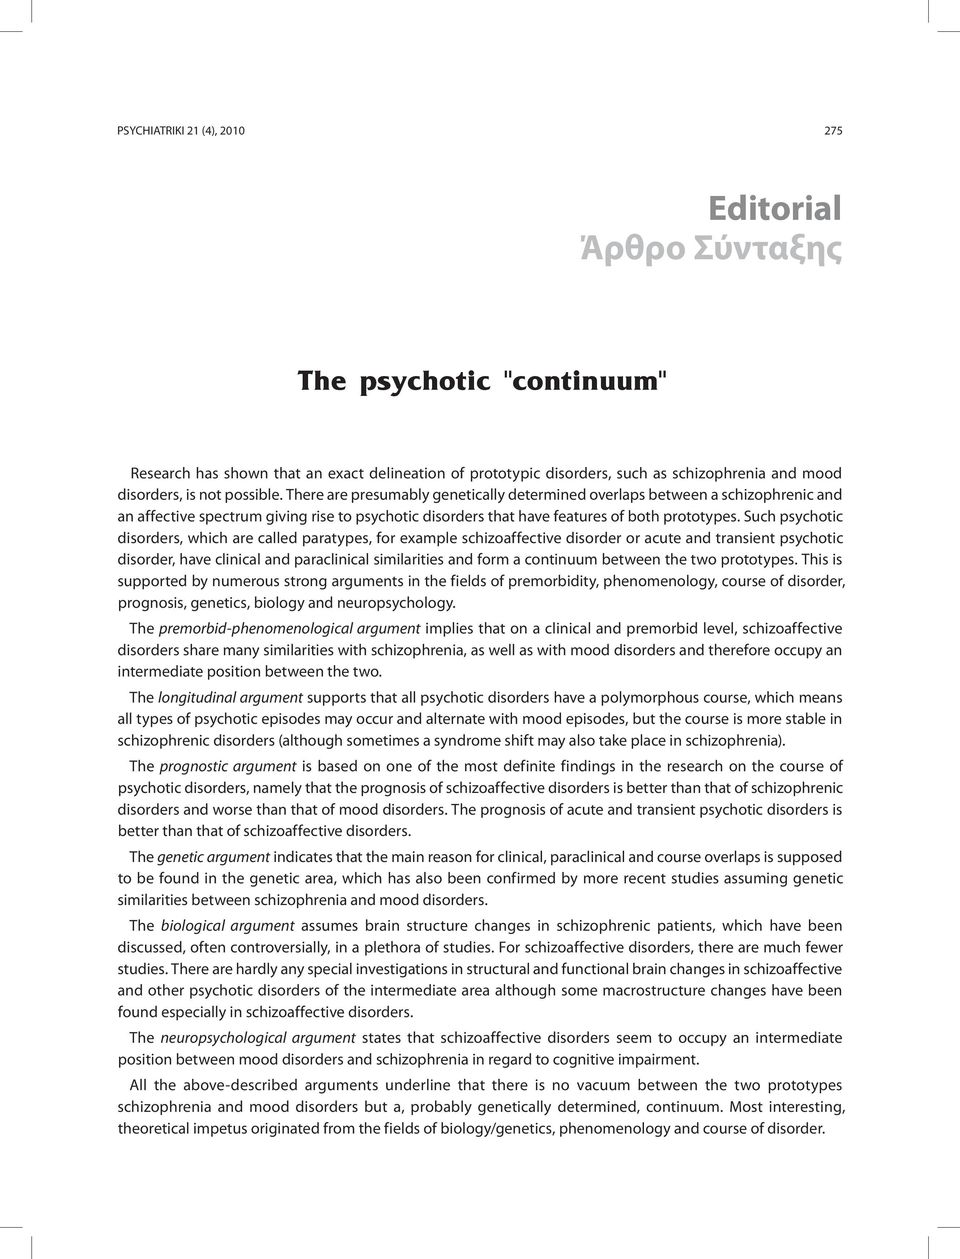 Such psychotic disorders, which are called paratypes, for example schizoaffective disorder or acute and transient psychotic disorder, have clinical and paraclinical similarities and form a continuum